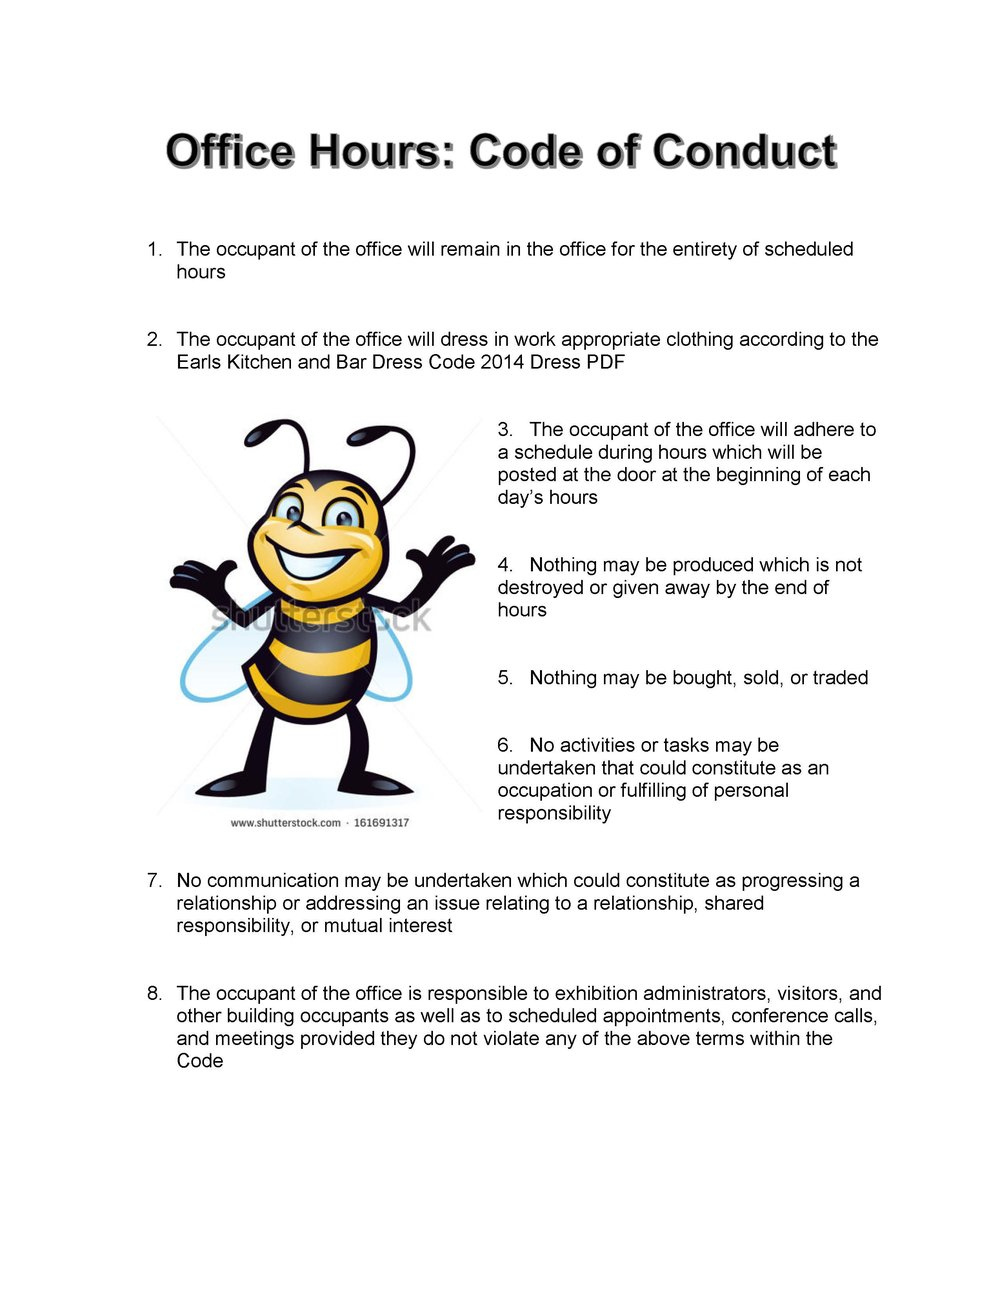 office hours code of conduct.jpg